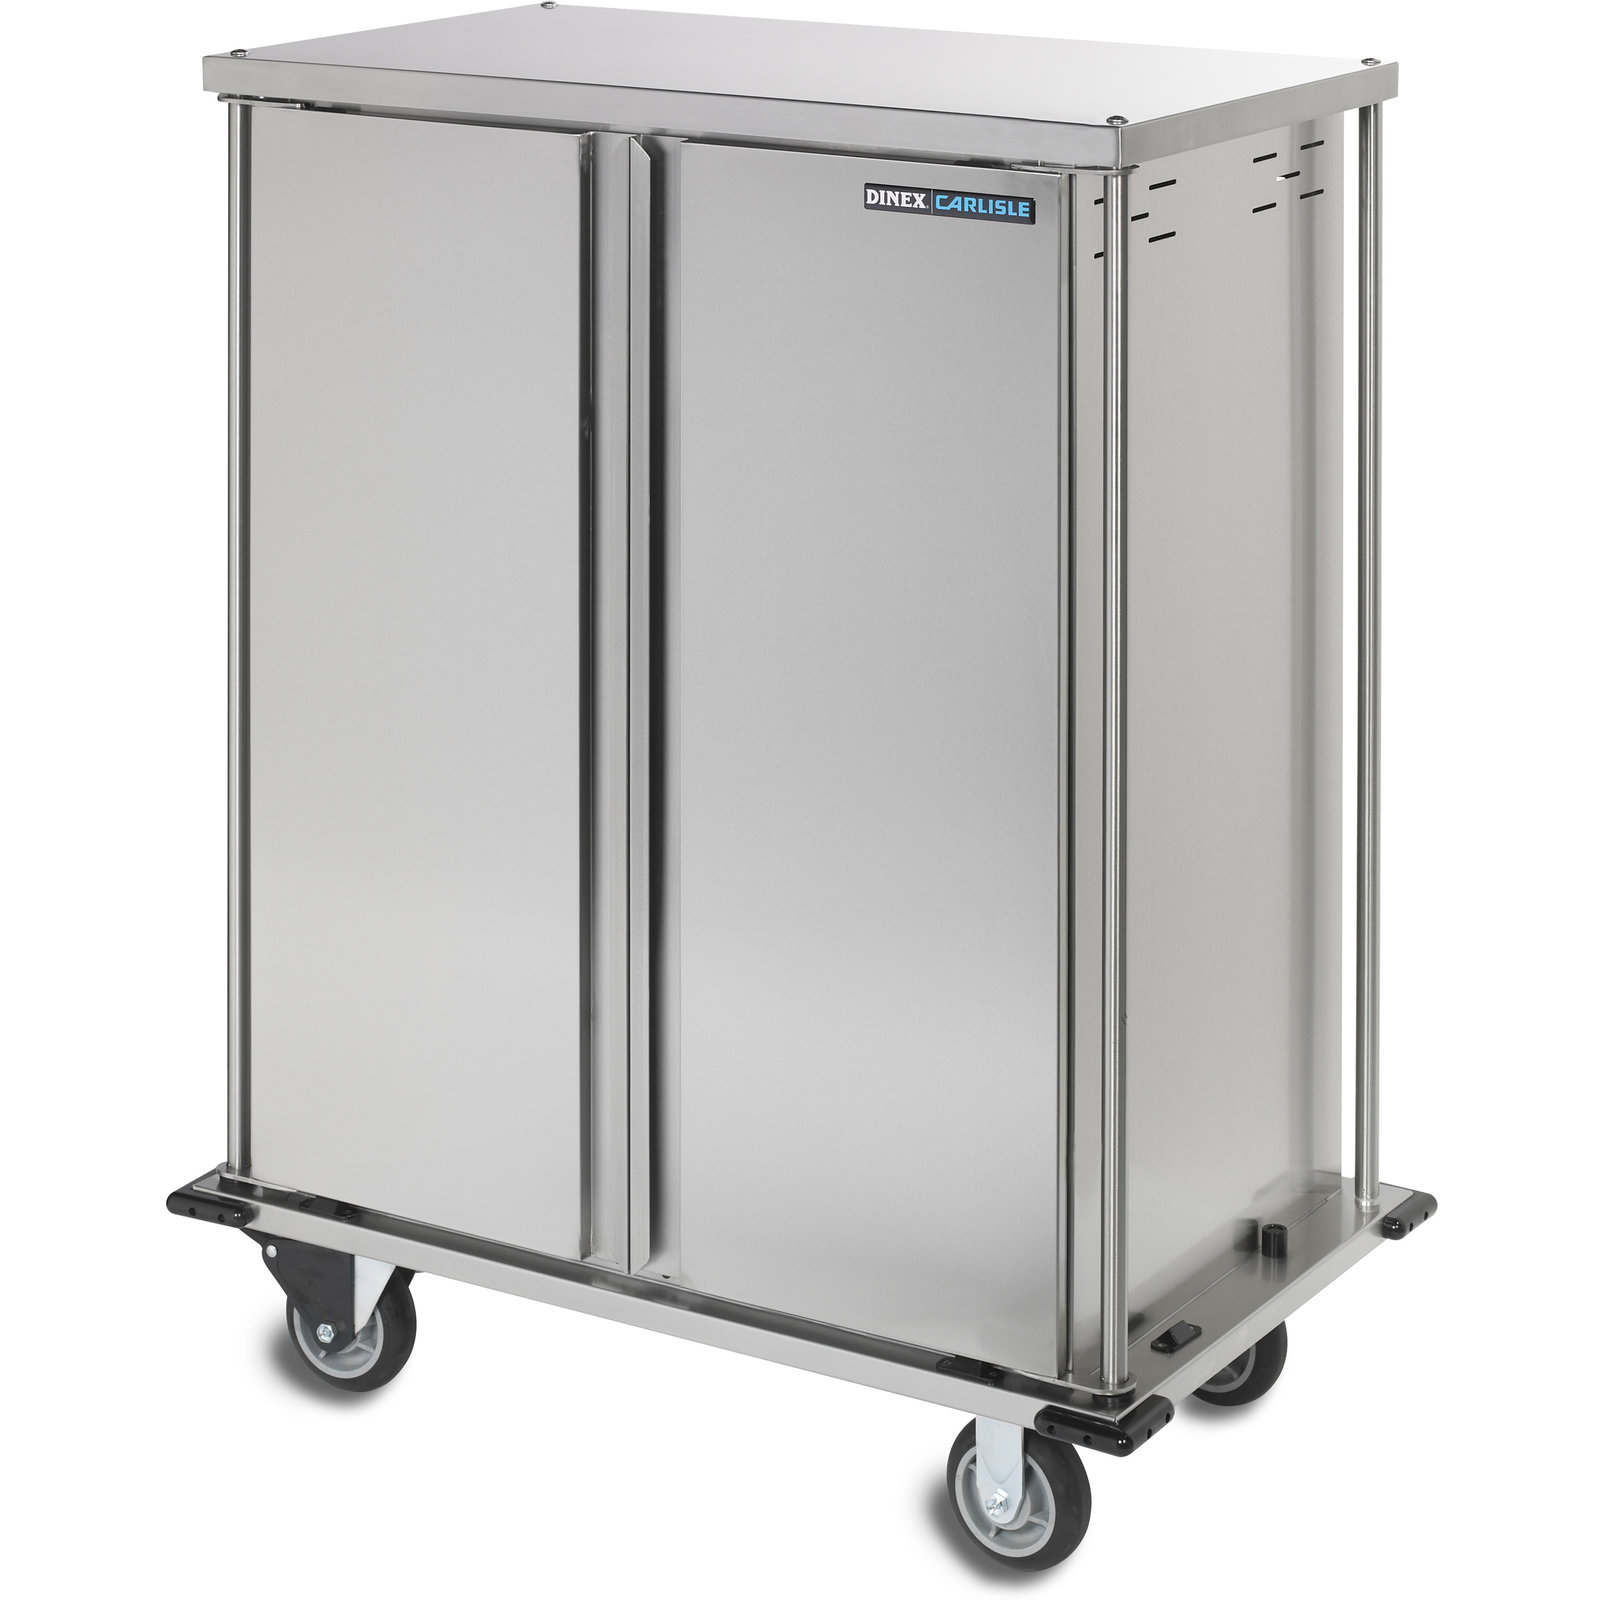 DXTQ1T2D10 - 10 Tray Cart Double Door One Tray per Slide 44.14\  x 27.58\  x 45.06\  - Stainless Steel  sc 1 st  Carlisle FoodService Products & DXTQ1T2D10 - 10 Tray Cart Double Door One Tray per Slide 44.14\